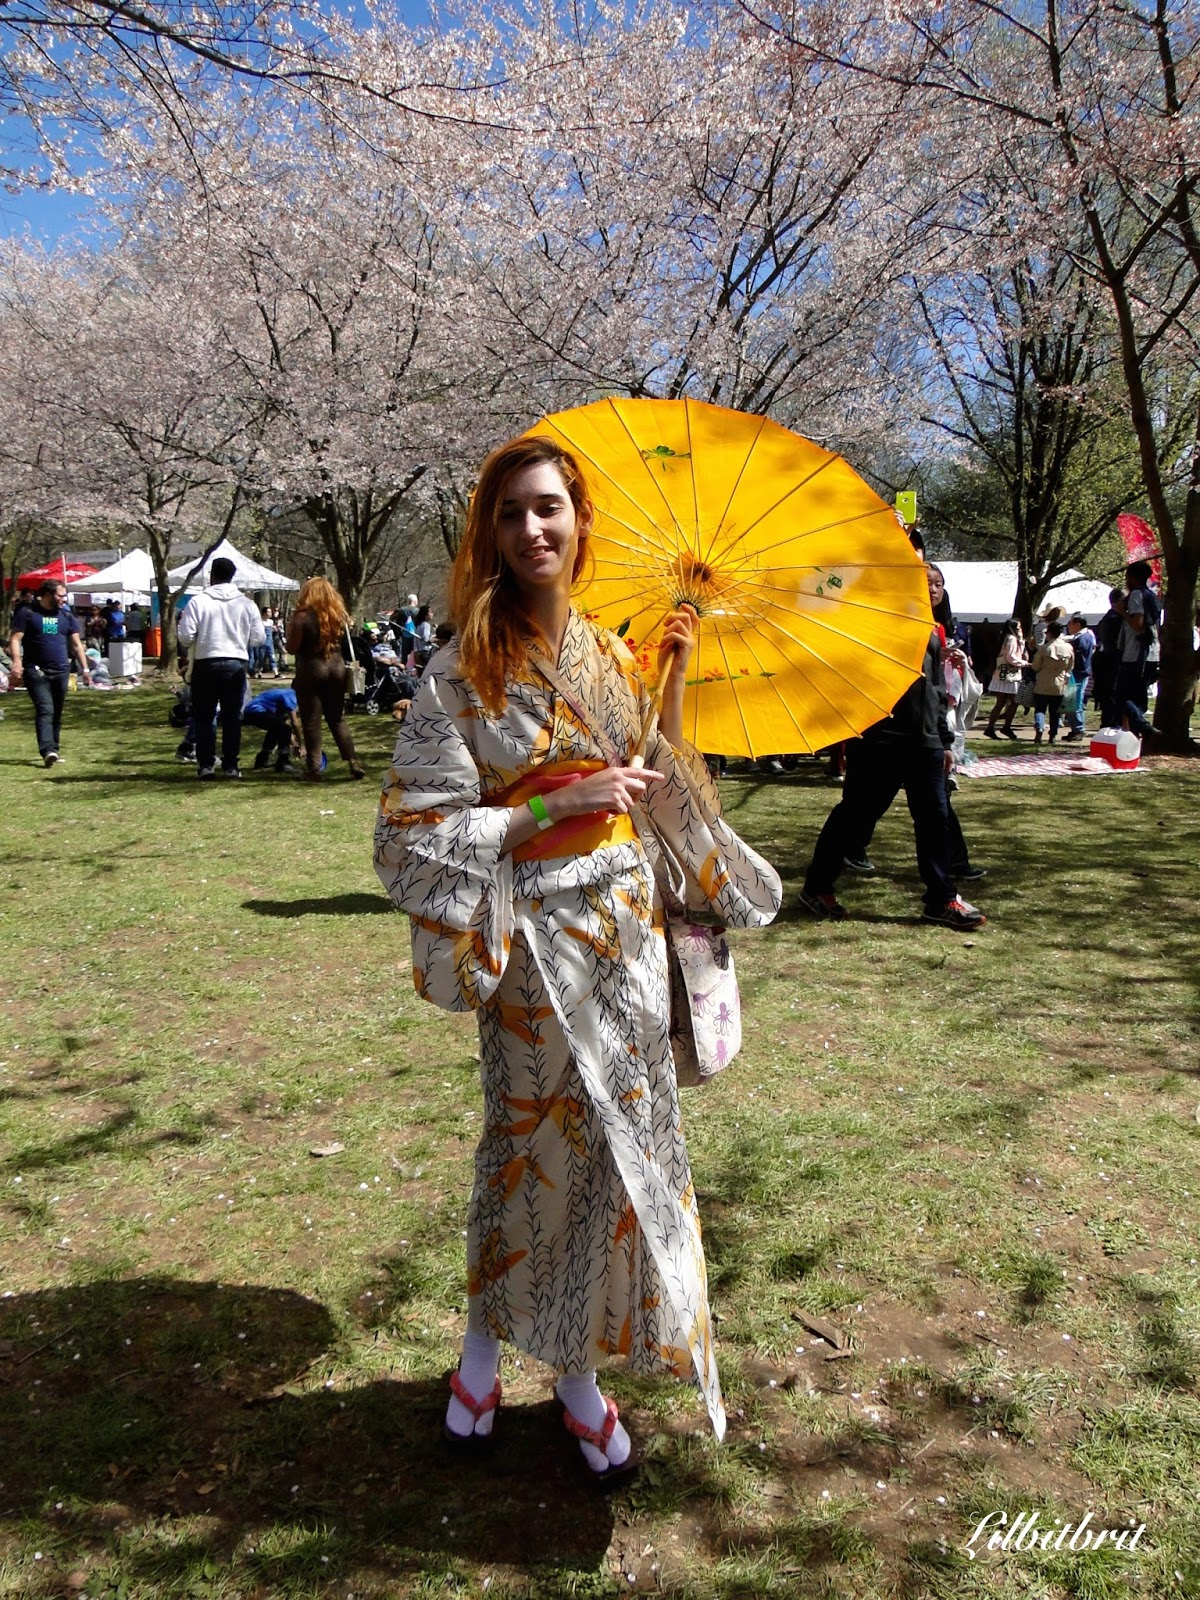 A Little Bit of British: Cherry Blossom Festival and ...